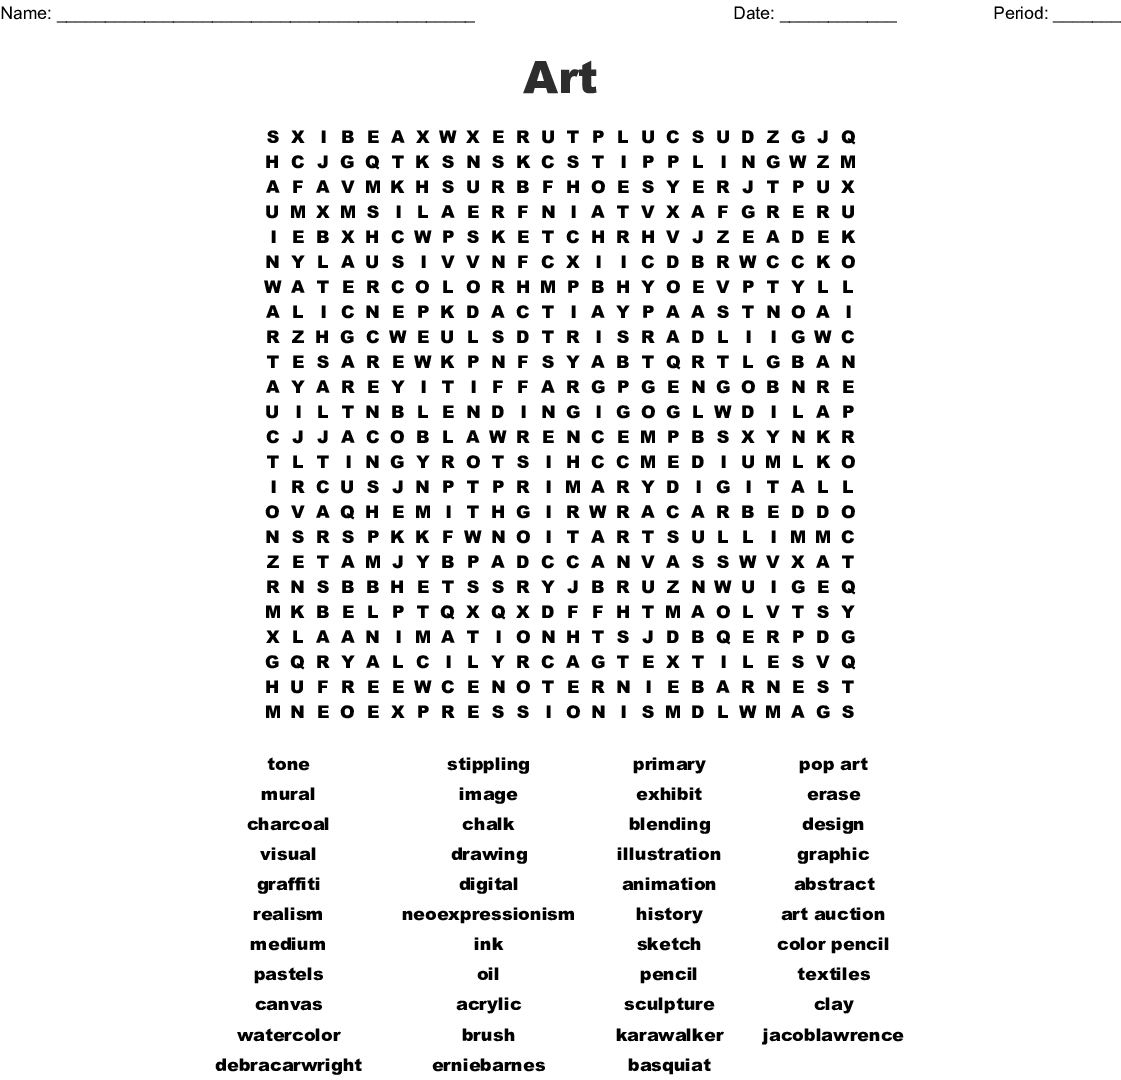 Art Supplies And Tools Word Search - Wordmint